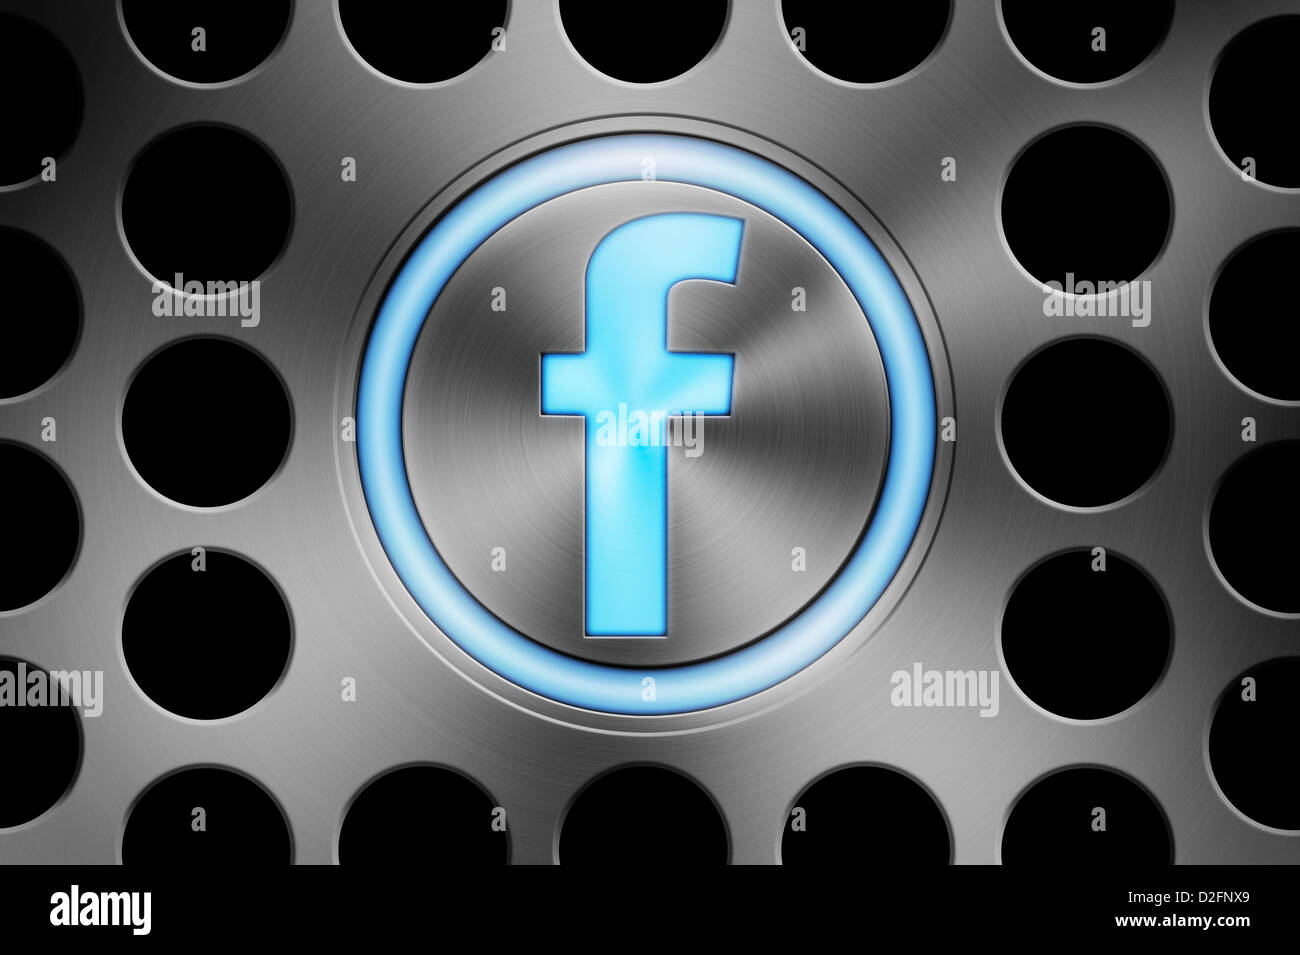 Blue glowing FACEBOOK icon button - Stock Image